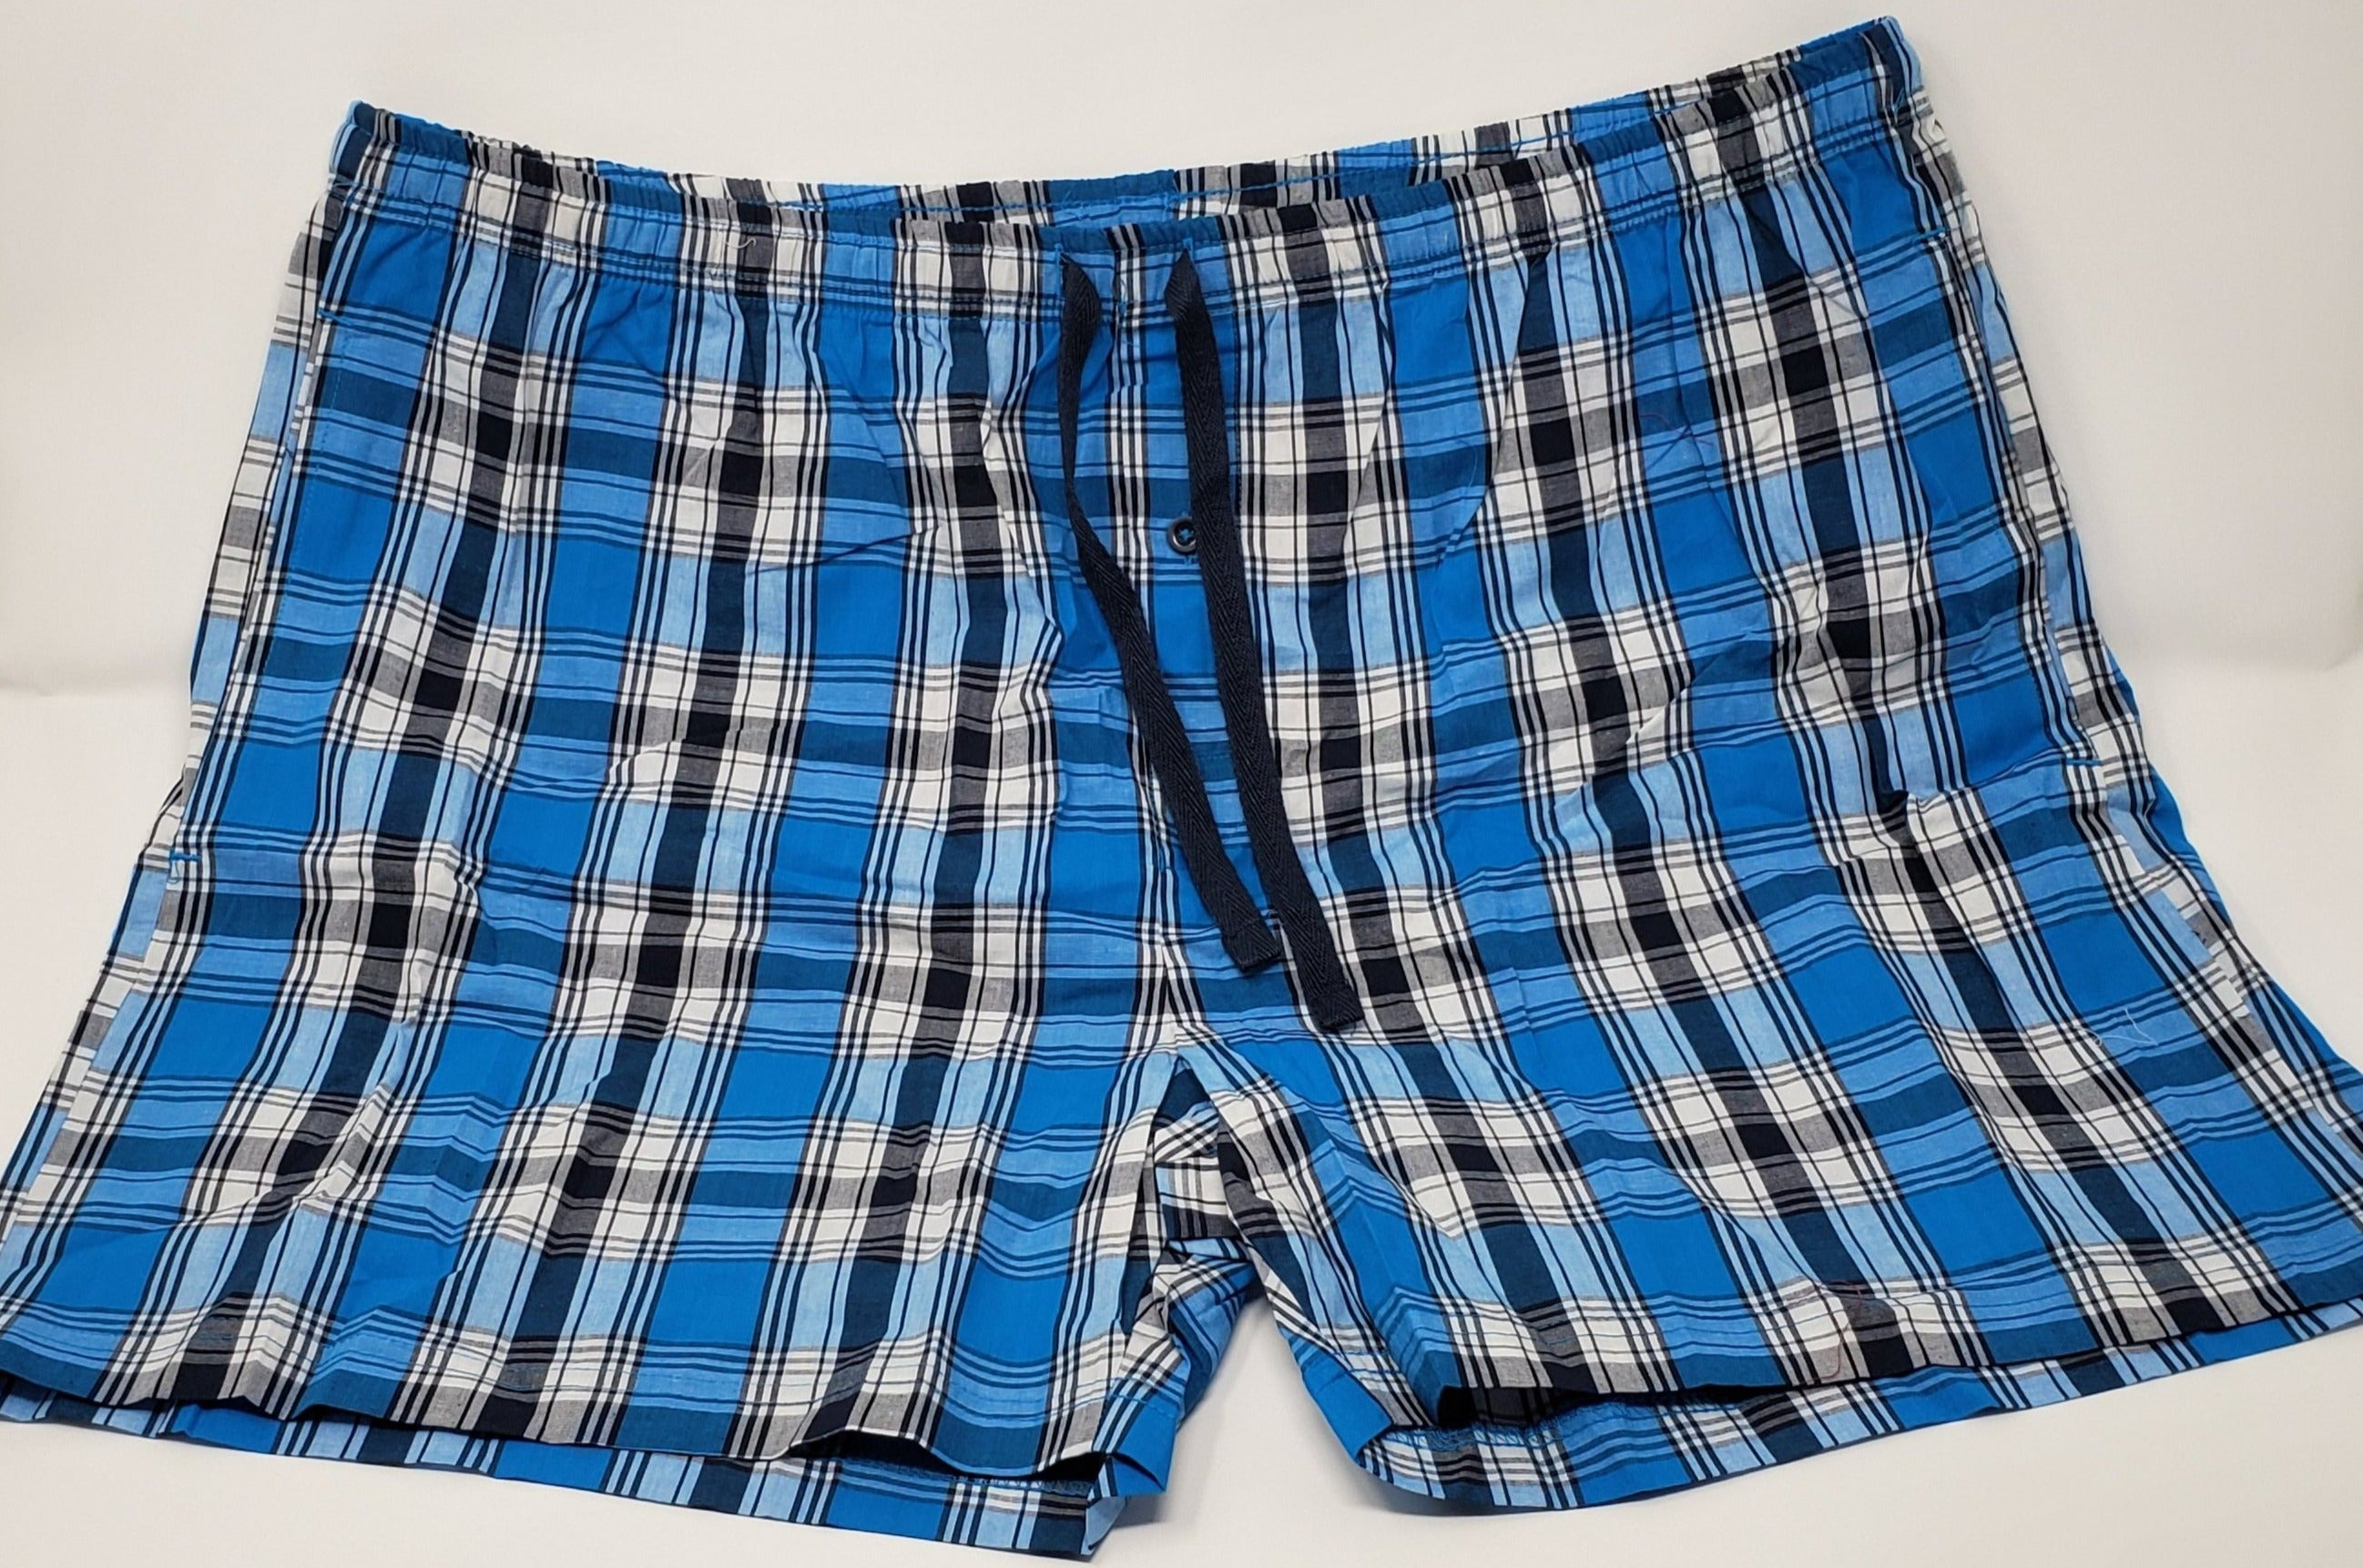 New Men's Boxer Brief Shorts - Selling in packages of 4